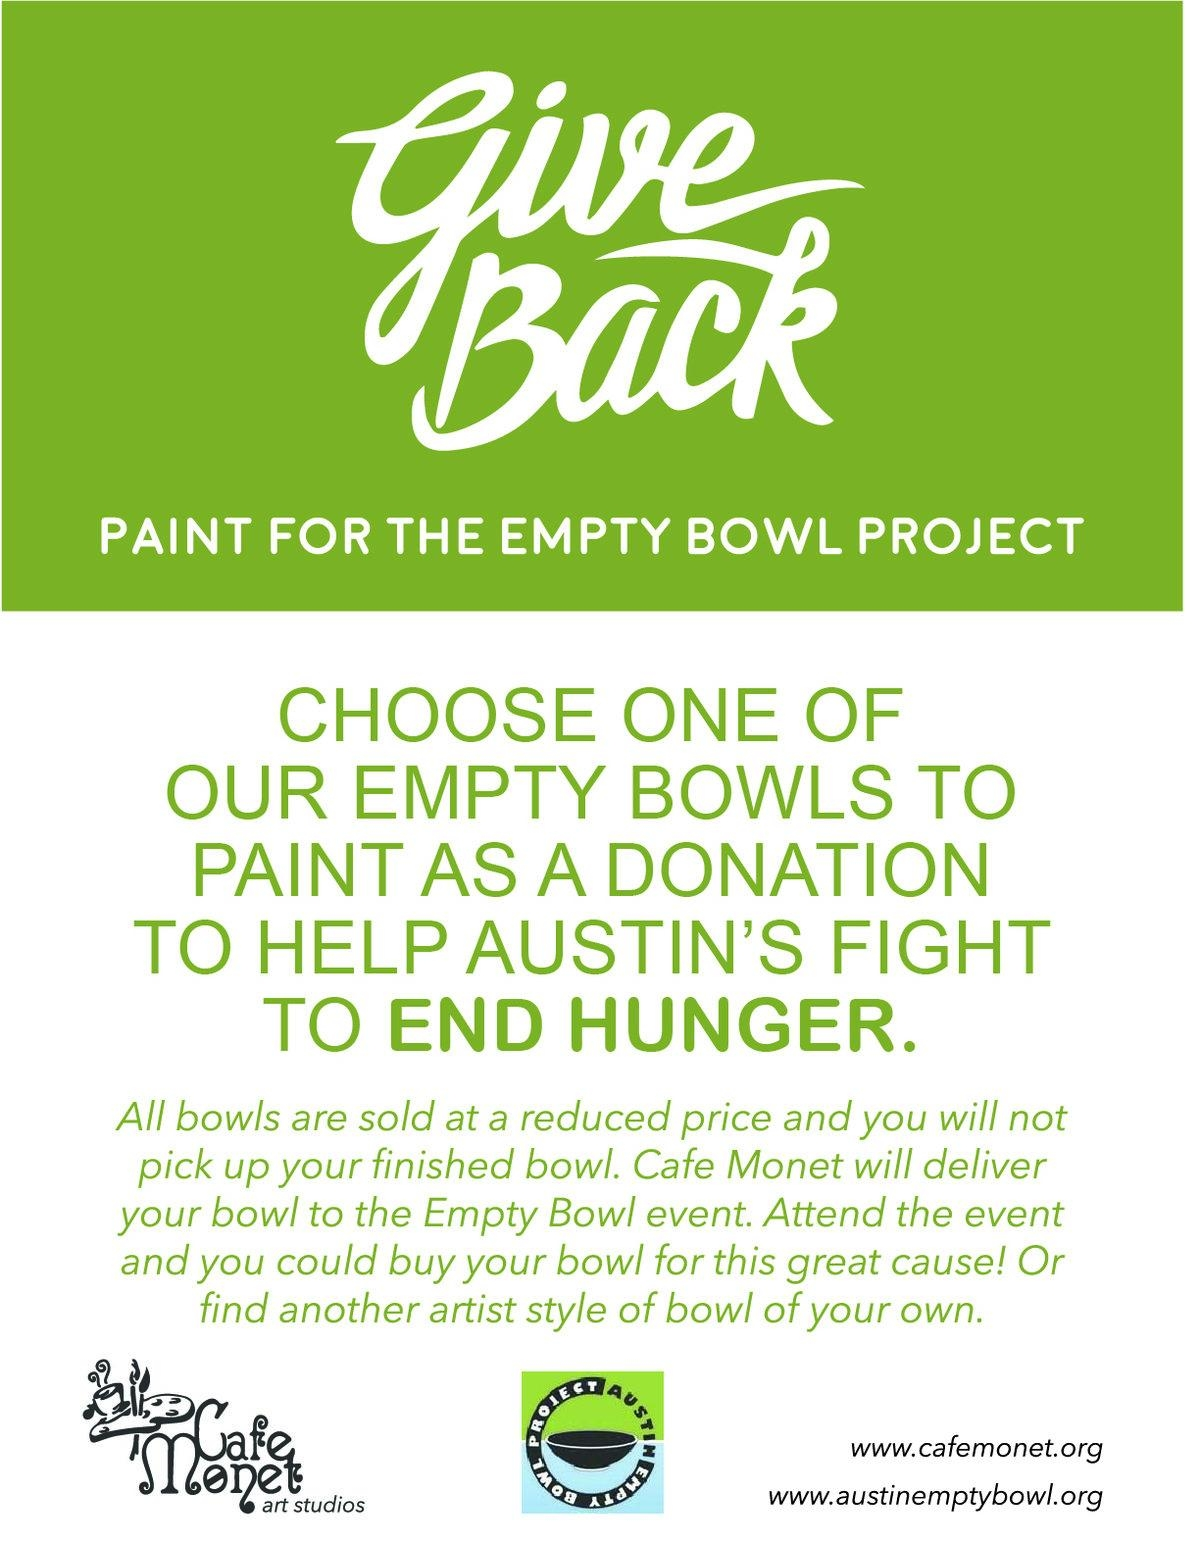 Hey Friends! We love being a place for you to feed your soul and get creative with friends and family. We also love being mindful of our neighbors who have different struggles than we may. Hunger in Austin is a real need and it is an honor to partner with you this fall as we paint pottery for a purpose. -